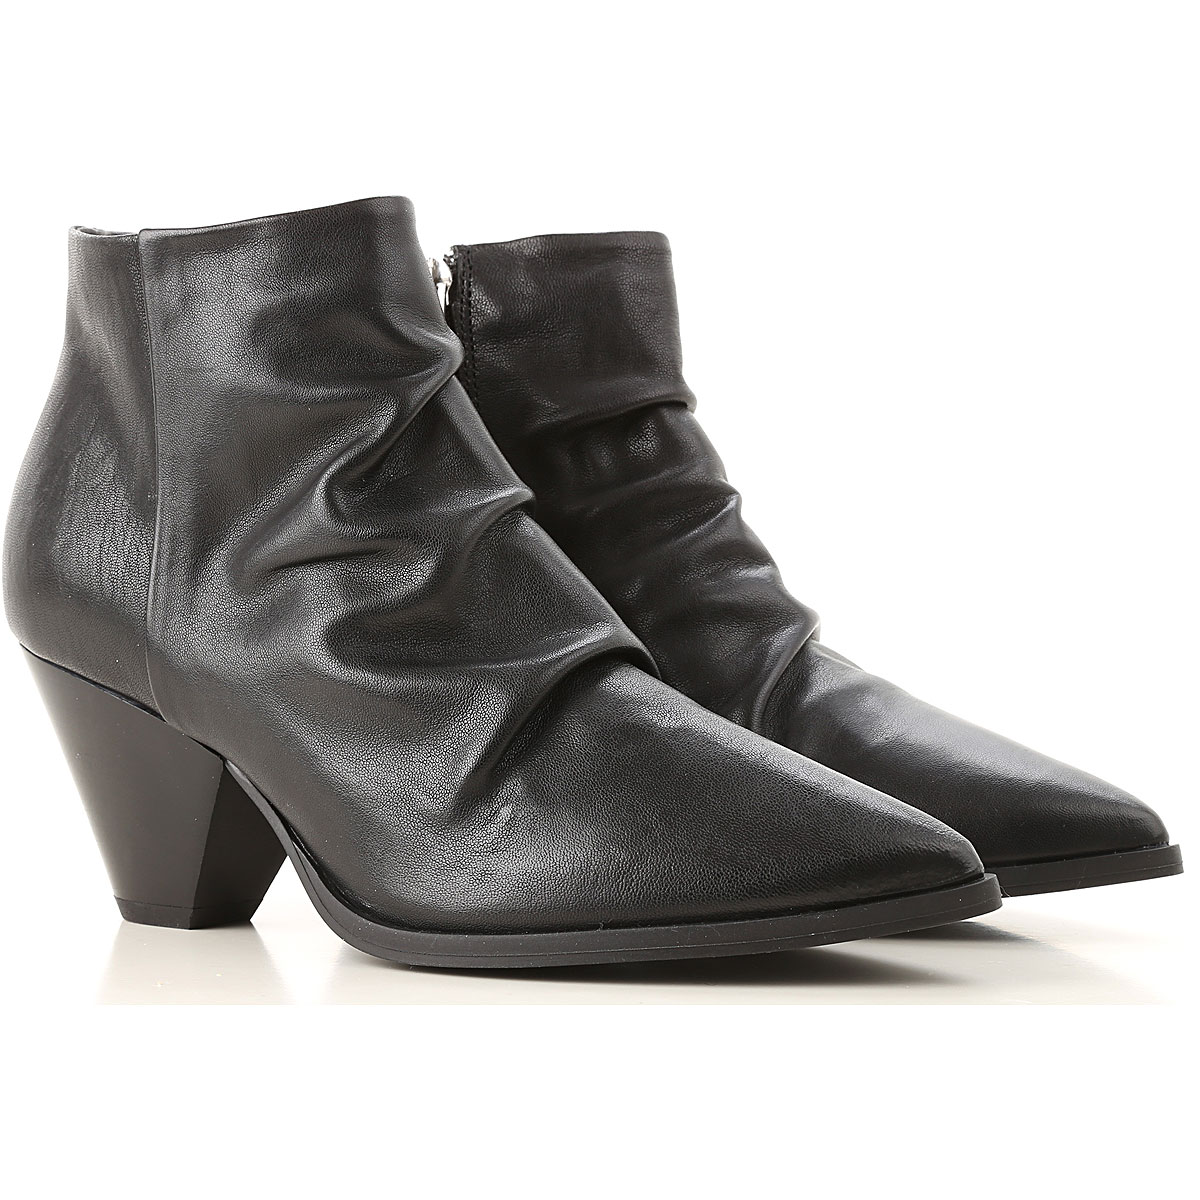 Image of Janet & Janet Boots for Women, Booties, Black, Leather, 2017, 10 11 5.5 6.5 7 8 8.5 9 9.5